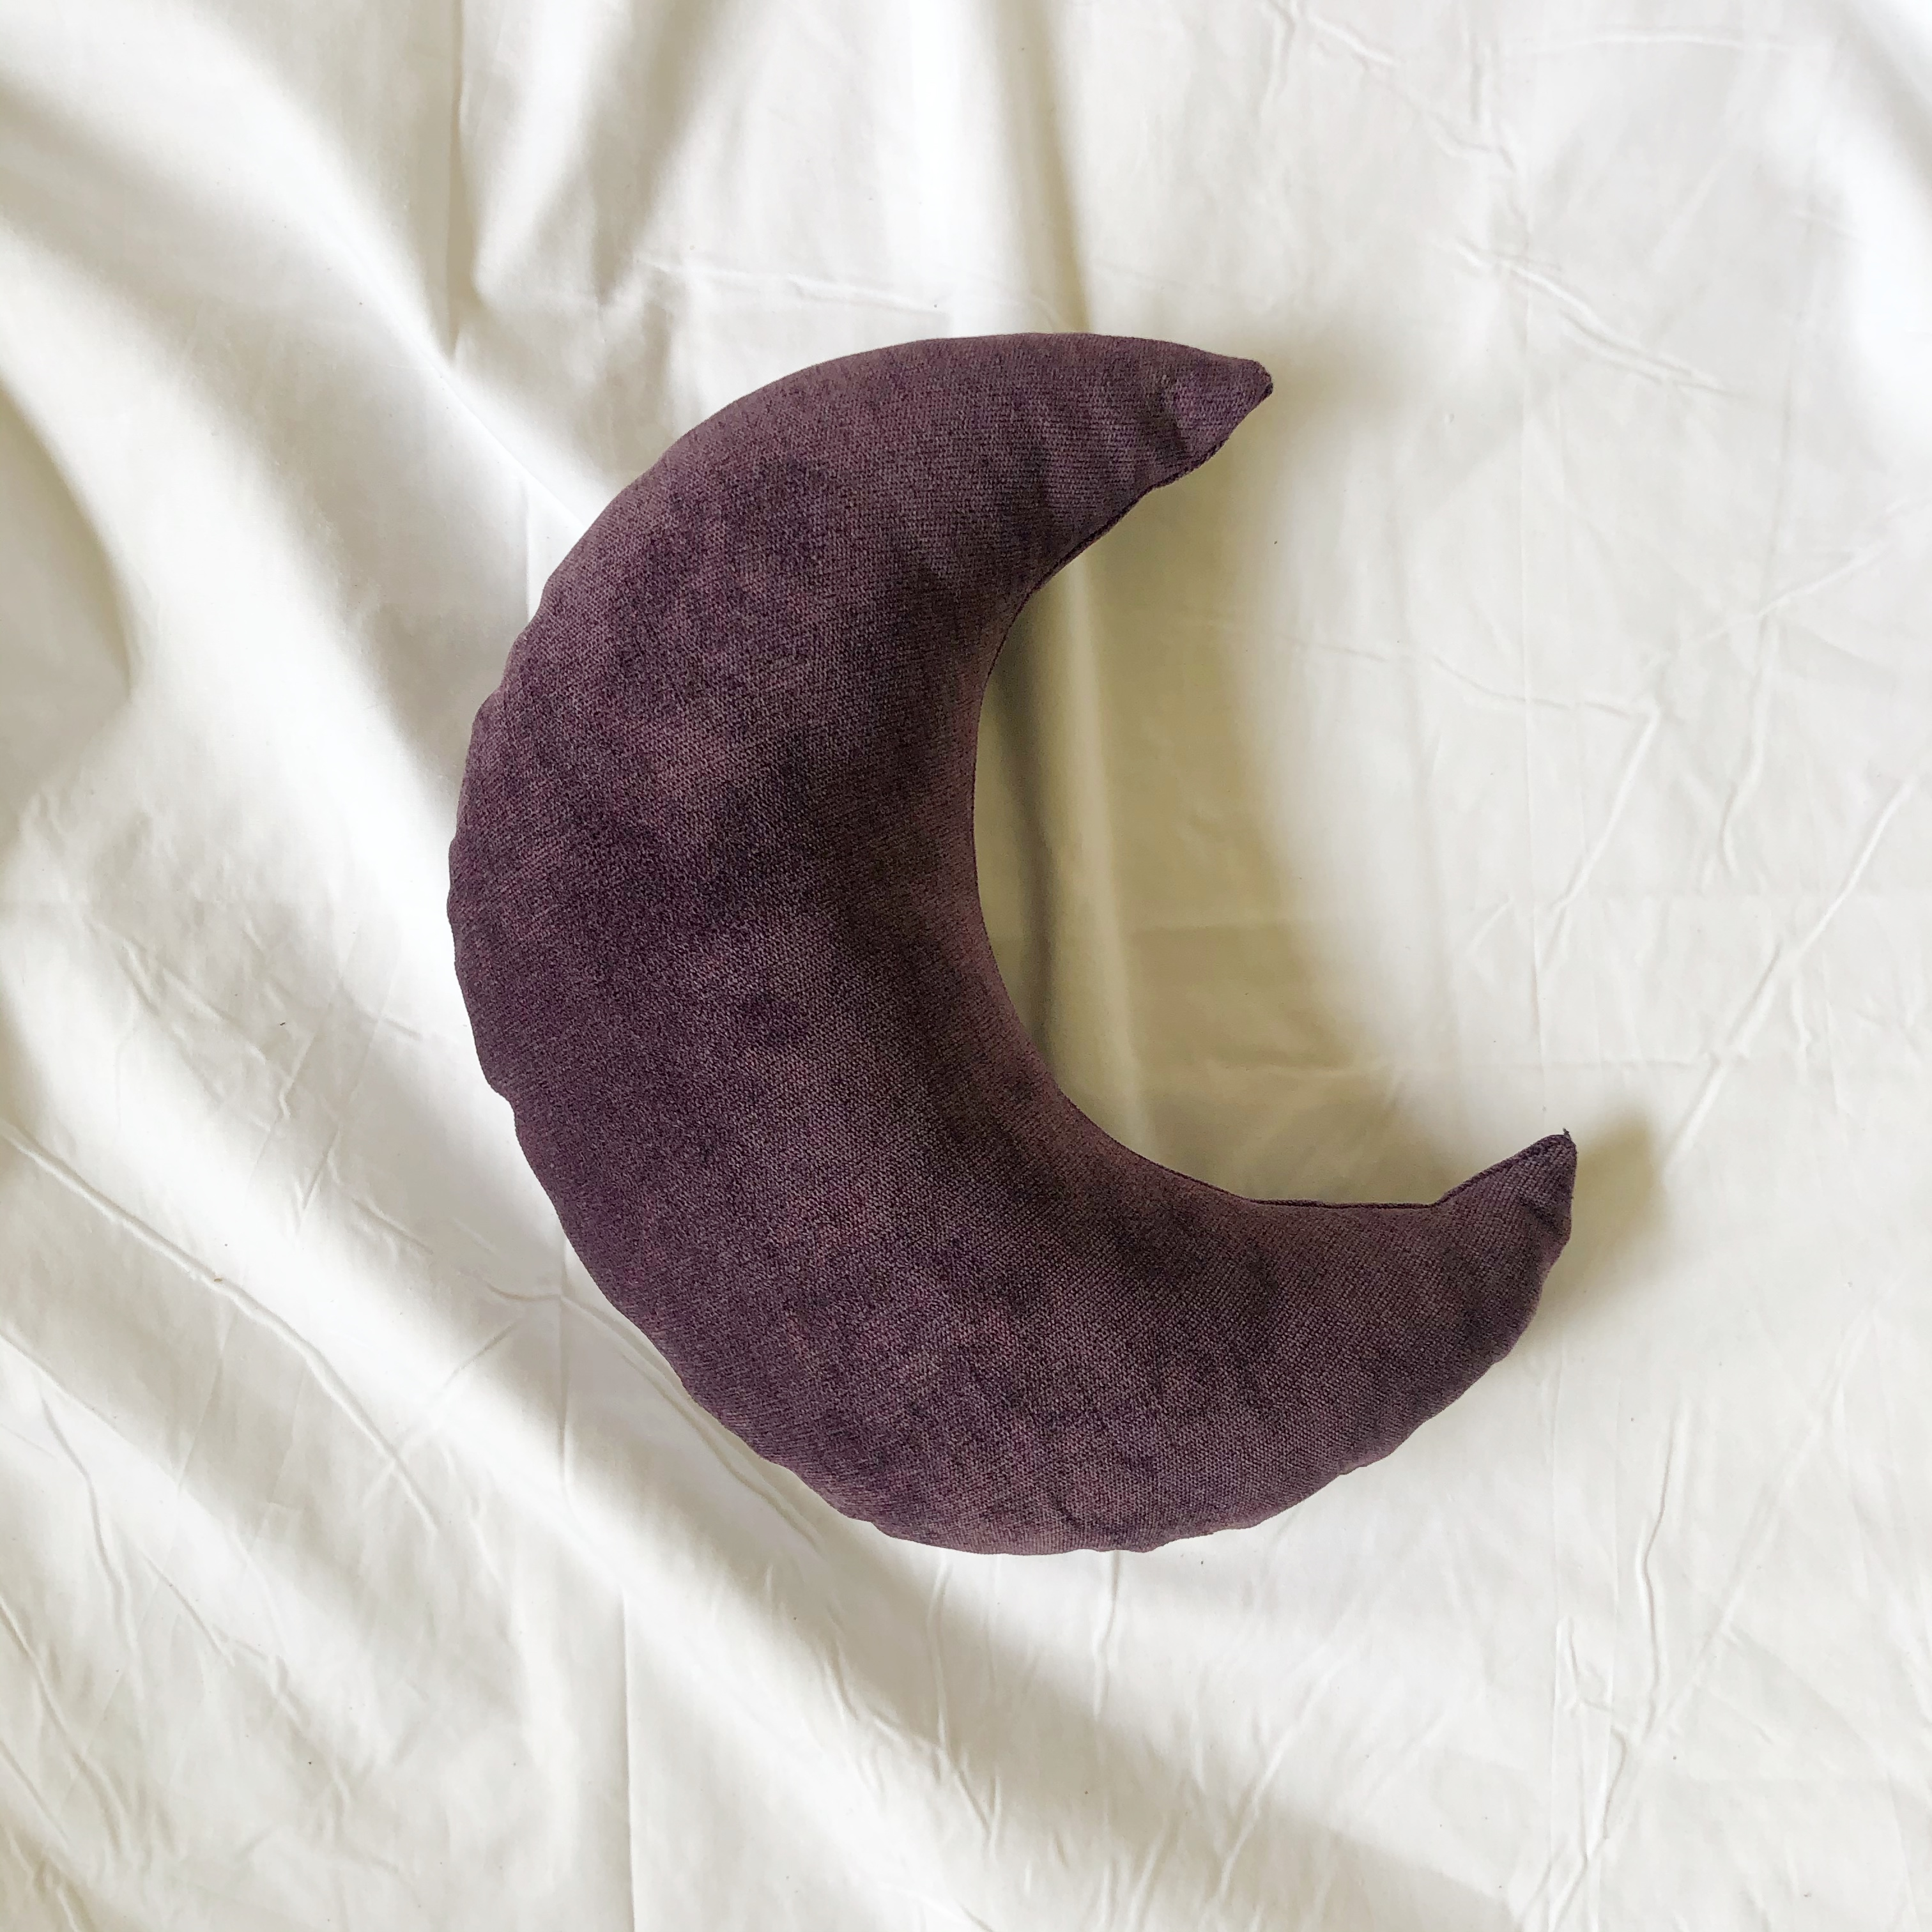 Moon-Shaped Throw & Travel Pillow